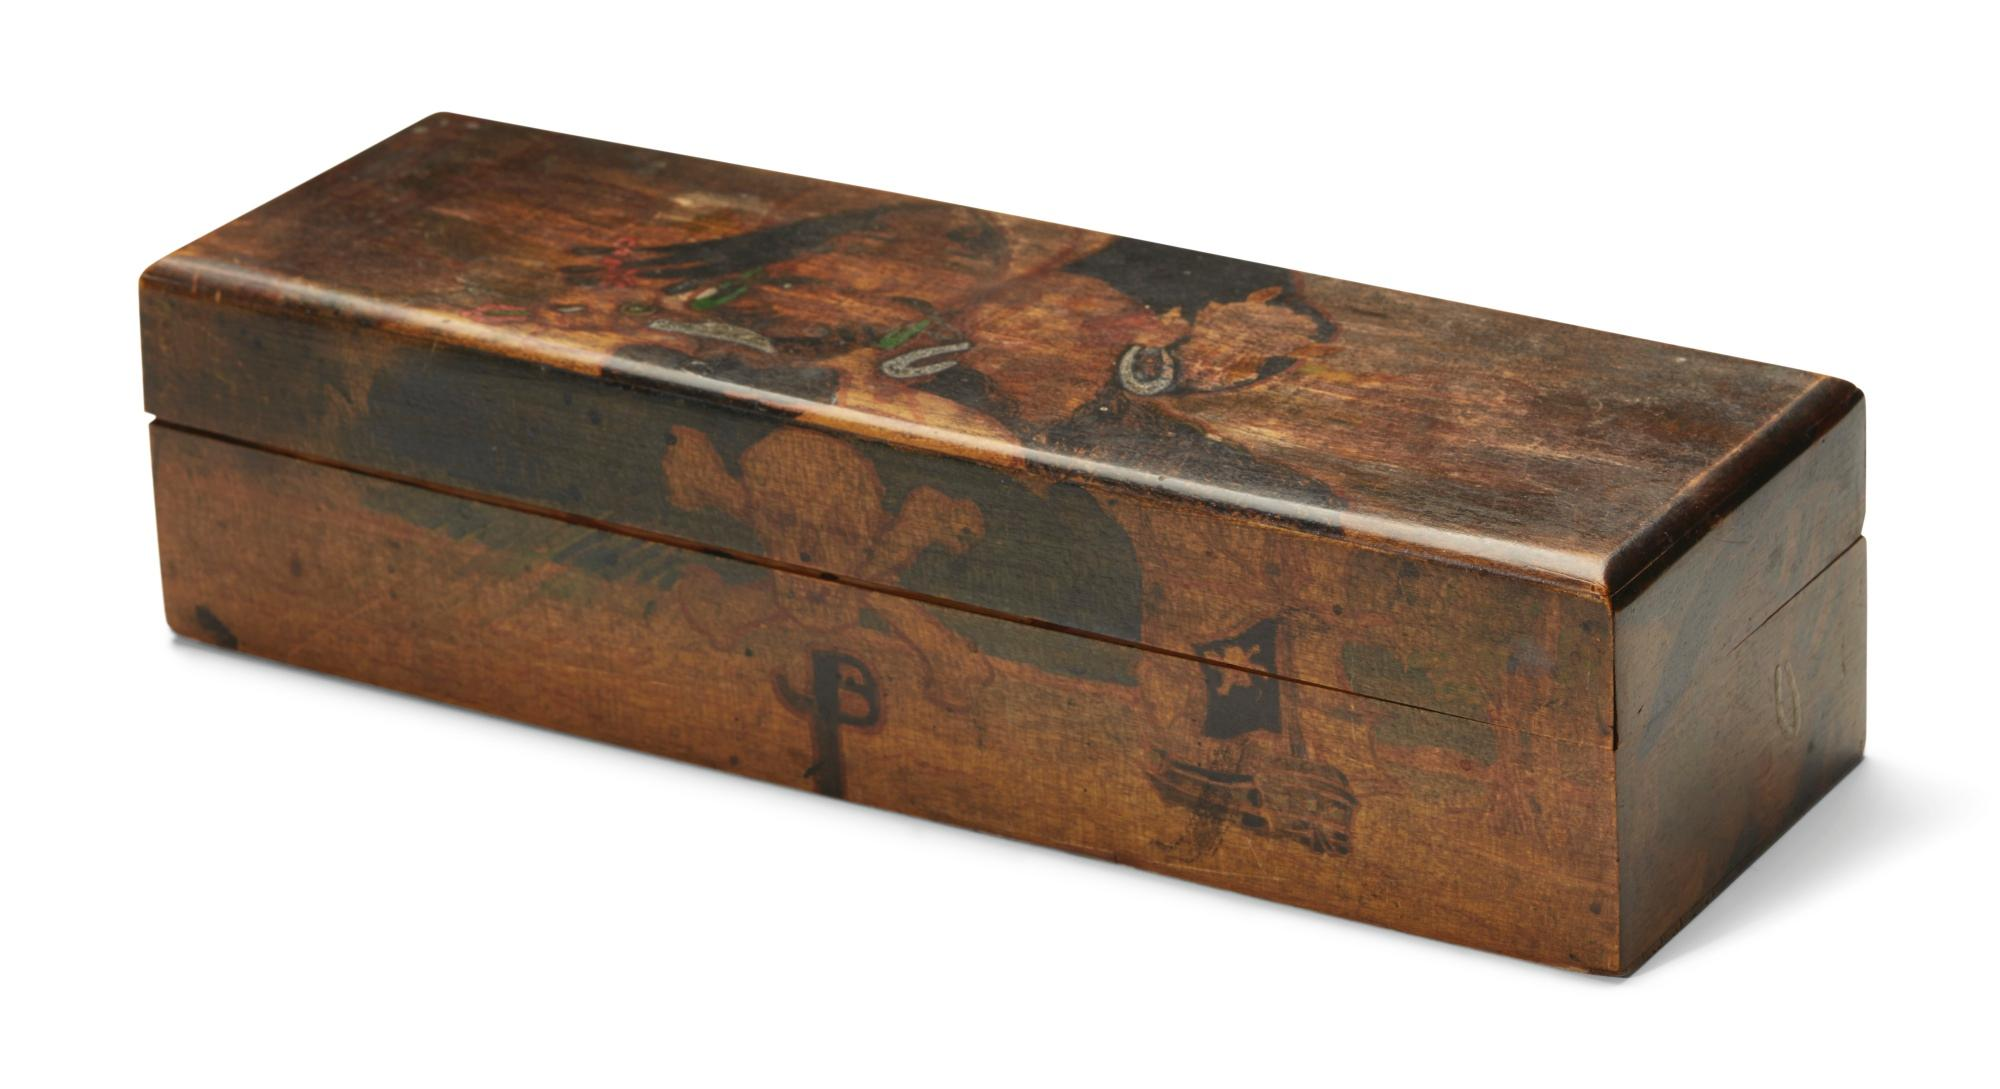 Artist's box for pencils, etc., decorated with a pirate theme by Jack Butler Yeats